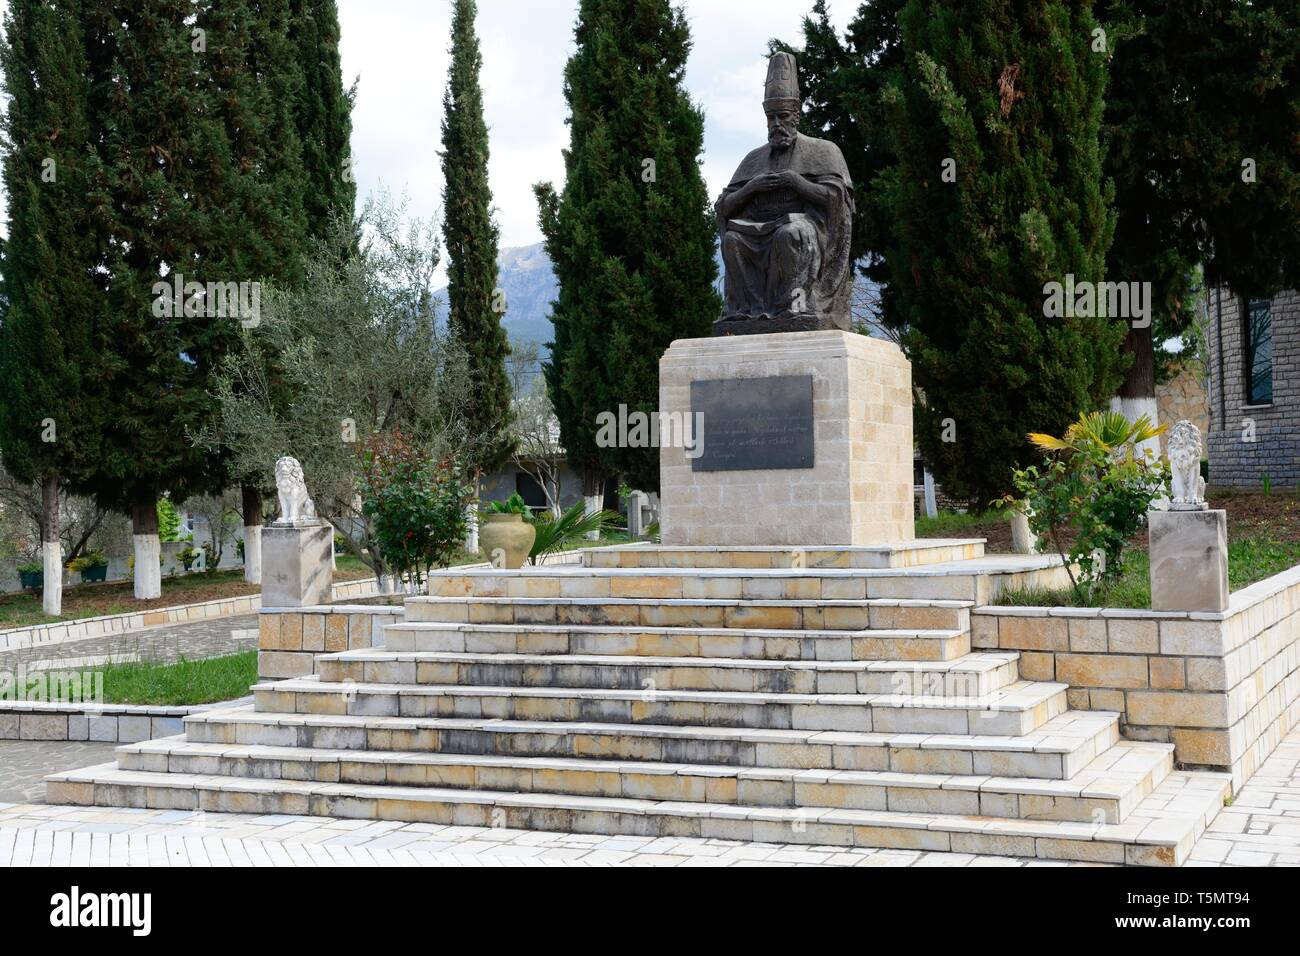 Statue of Haji Bektash an Alevi Muslim mystic at the Bektashi World Centre Bektashi order headquarters Tirana Albania - Stock Image